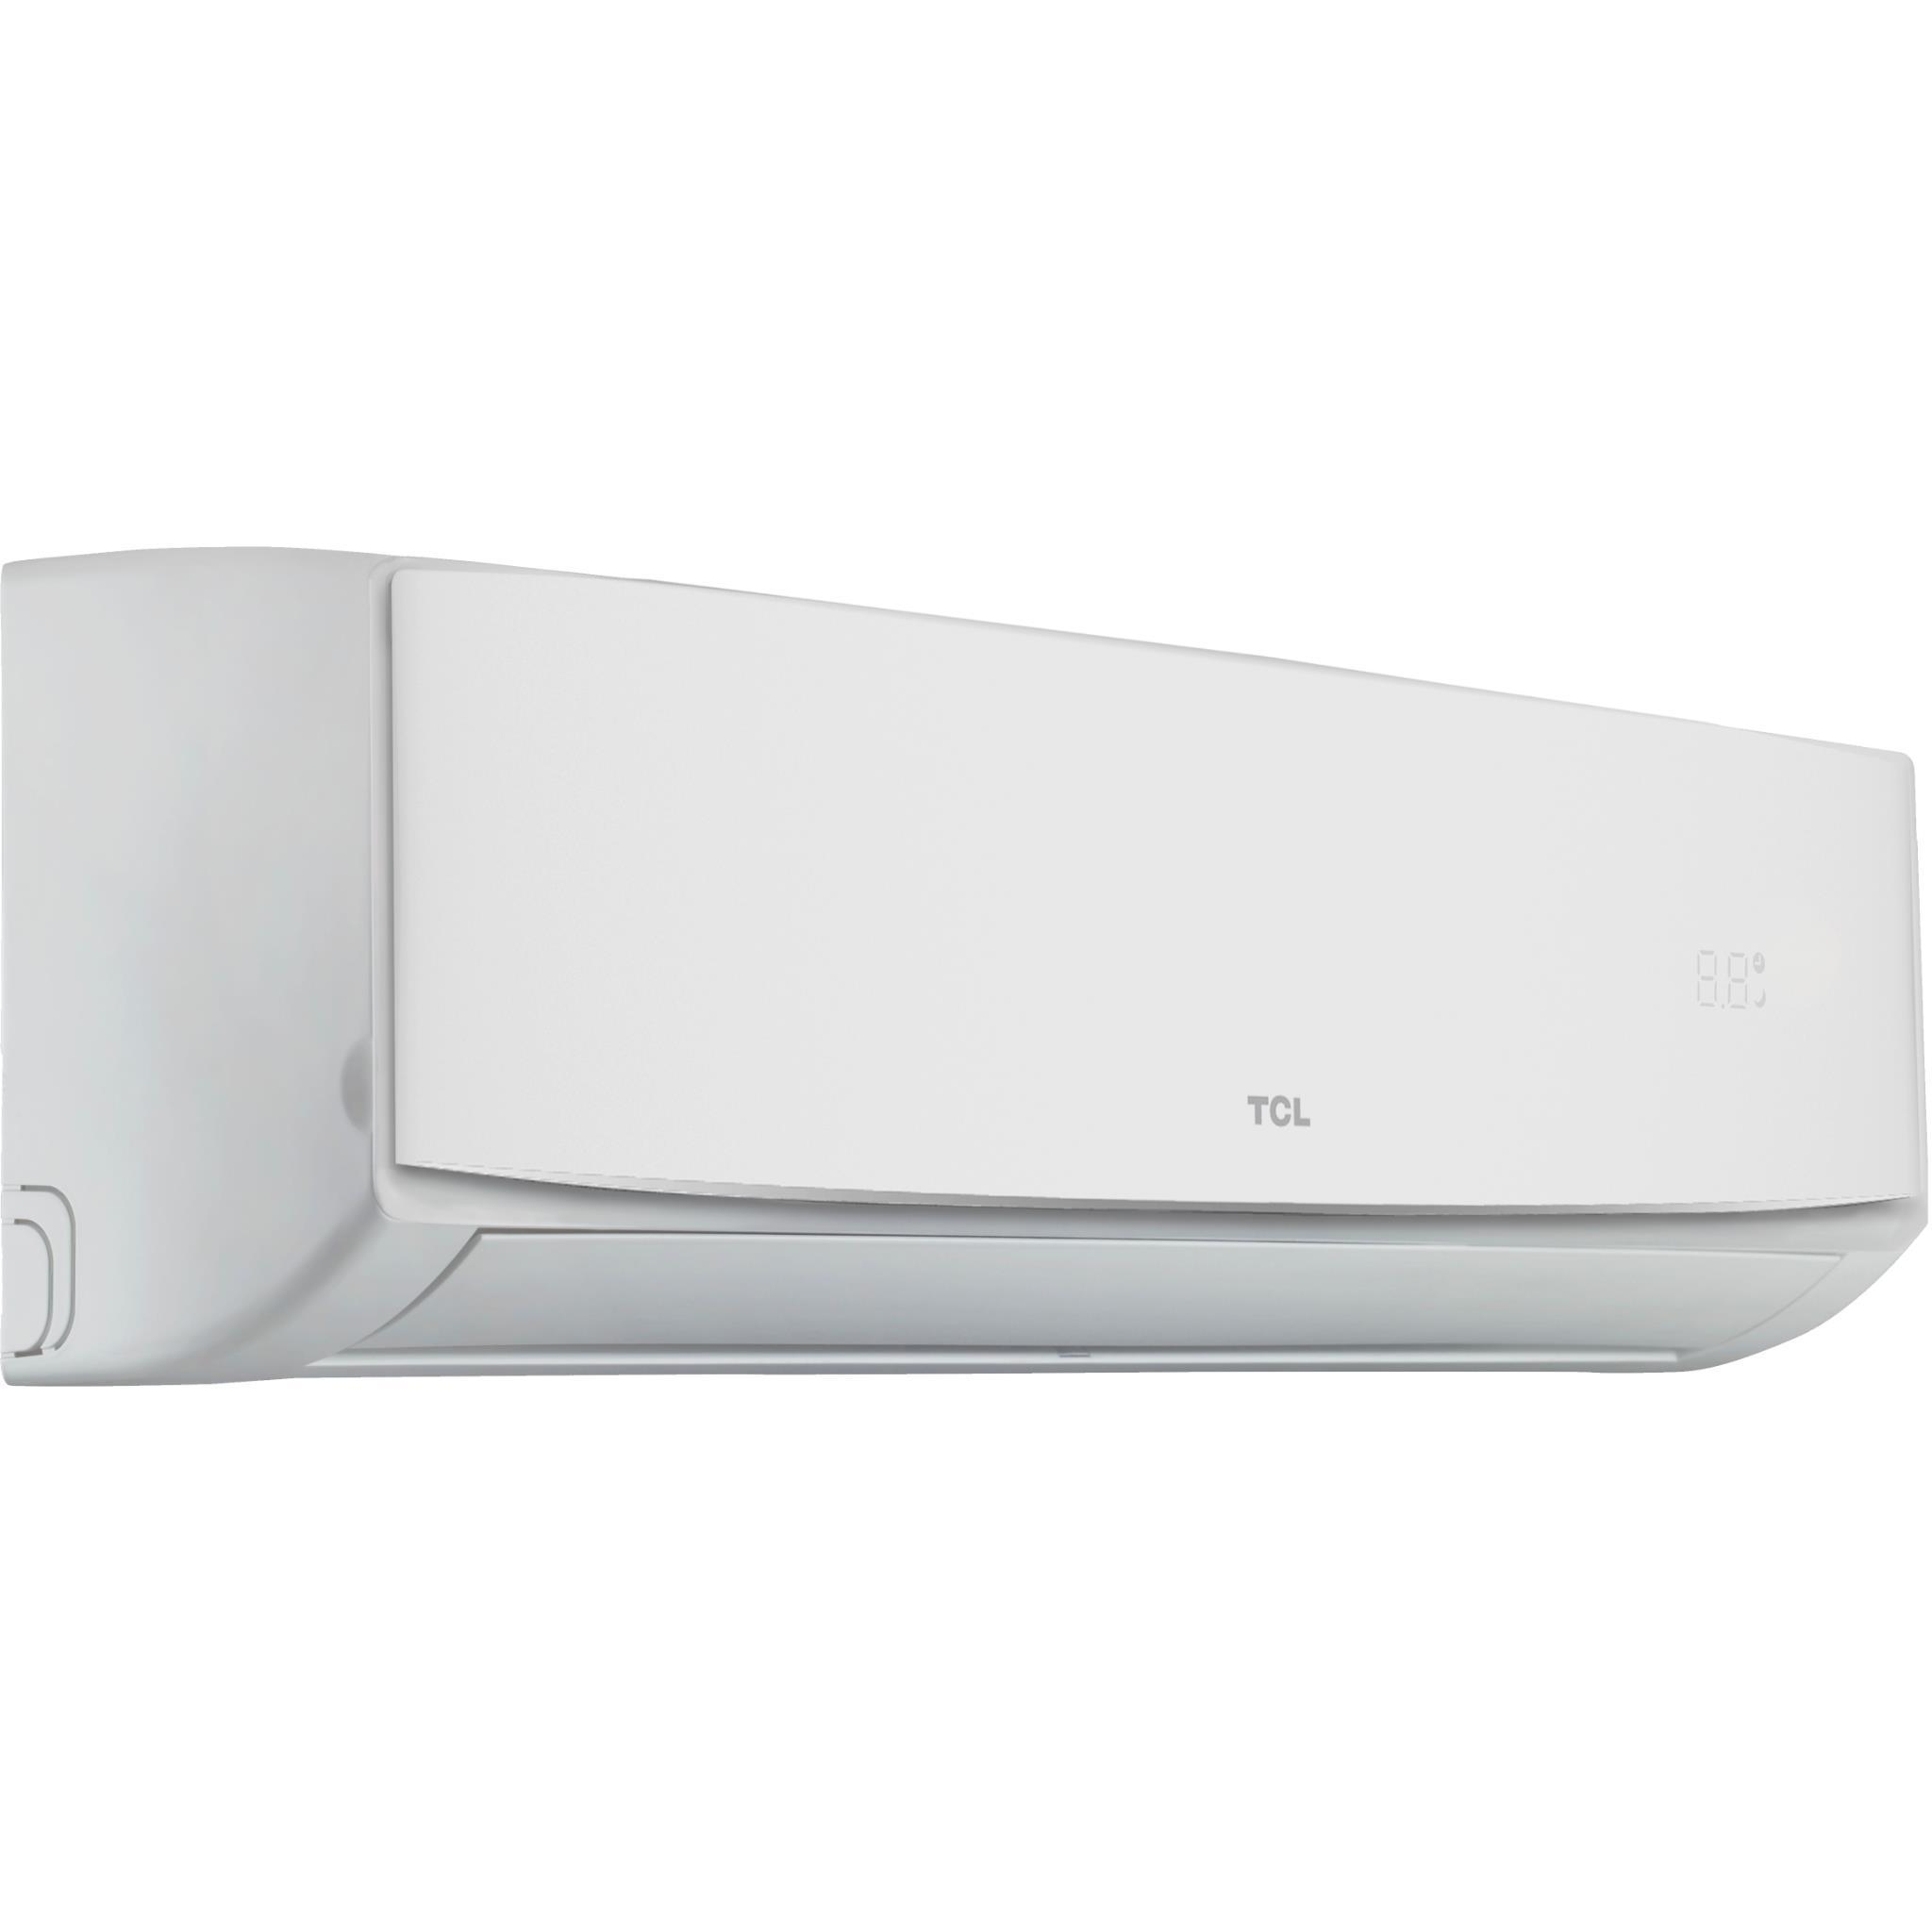 TCL TCLSS12 3.2kW Split System Inverter Reverse Cycle Air Conditioner